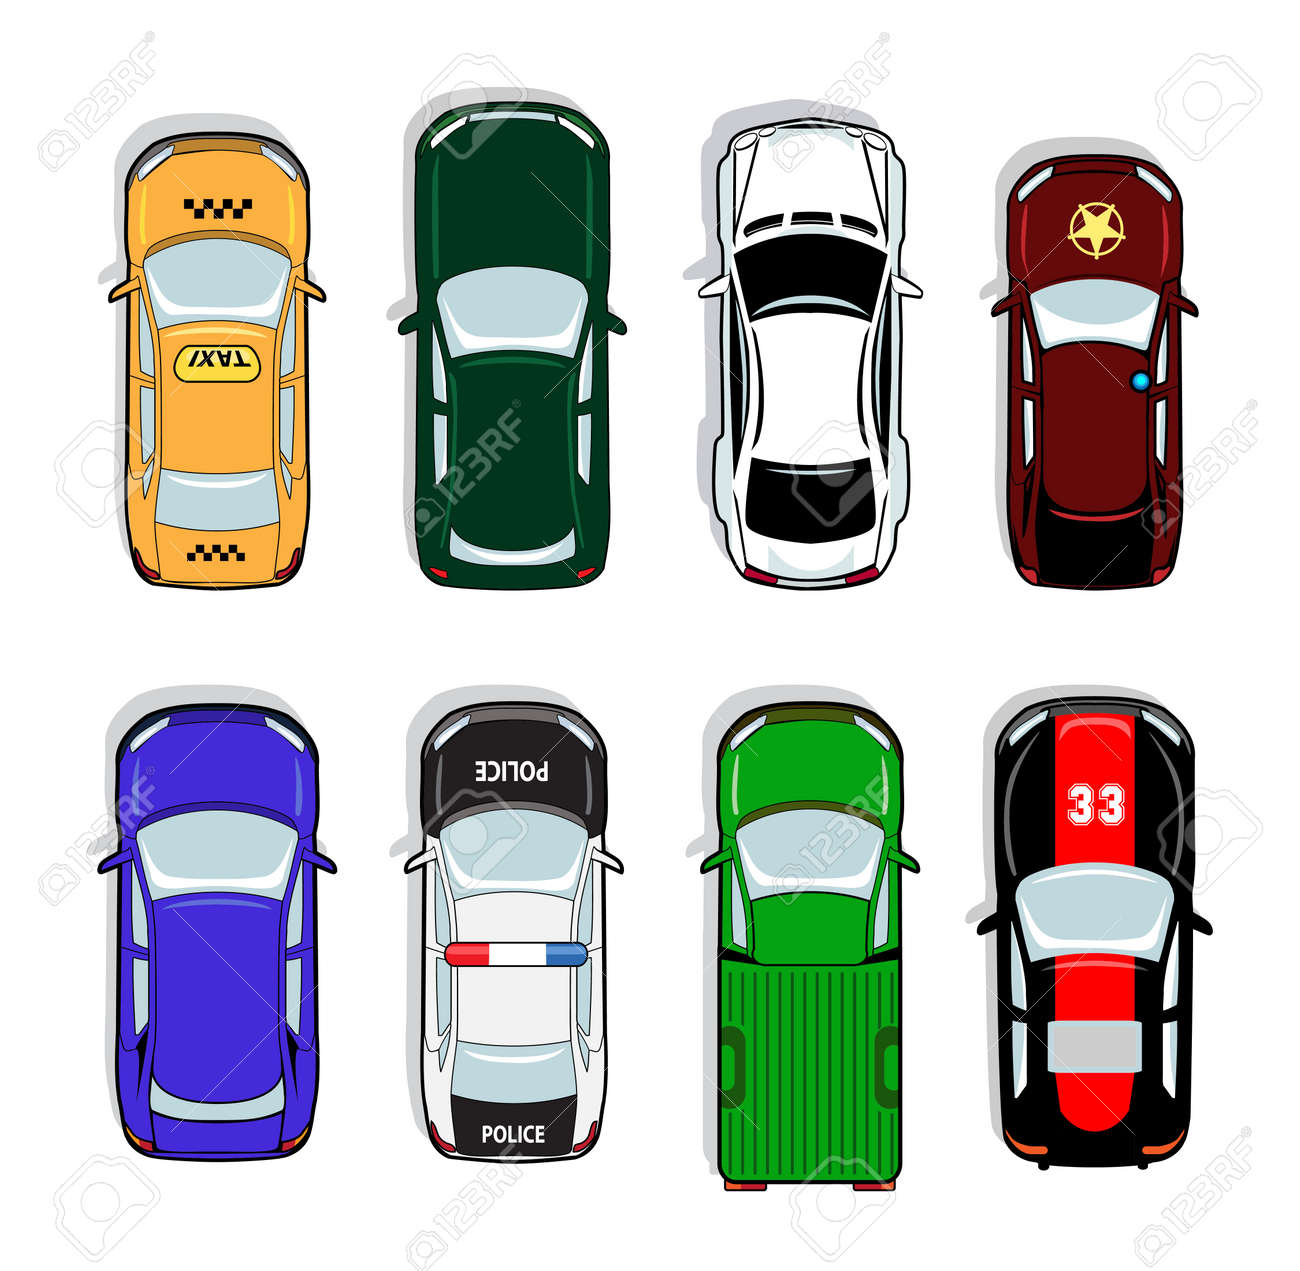 Police car and taxi, sports car and sedan icons. Transport sign, auto, drive and symbol, vector illustration - 166768925